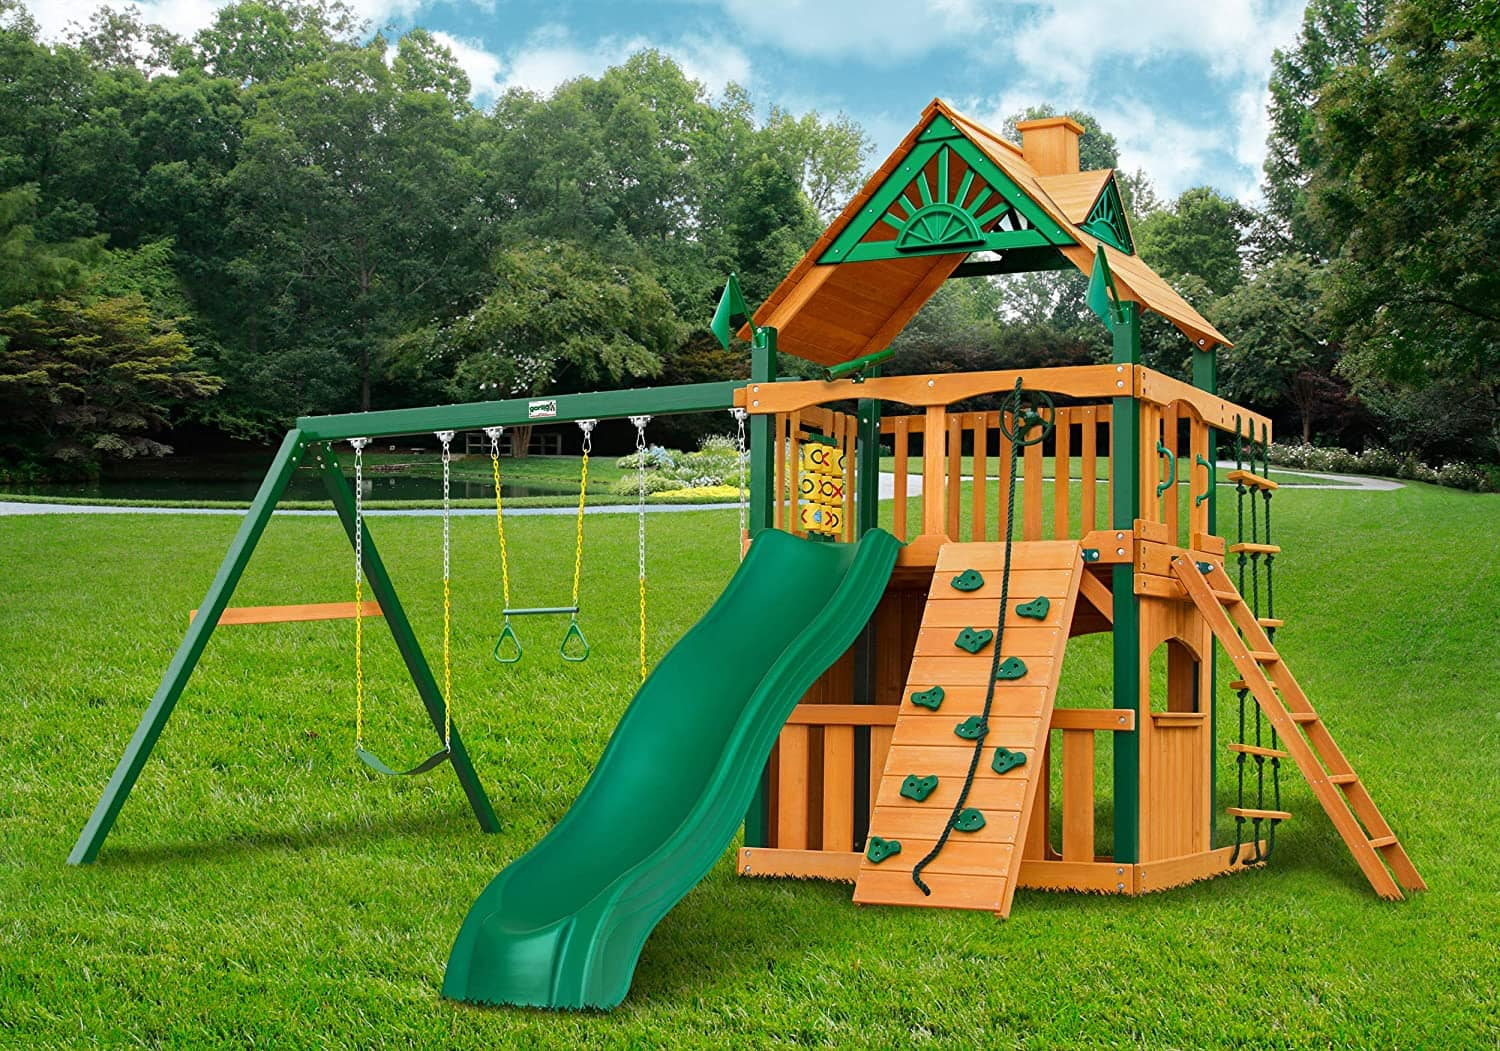 Gorilla Playsets Chateau Clubhouse Cedar Swing Set with Timber Shield Posts $2397 + Free Delivery